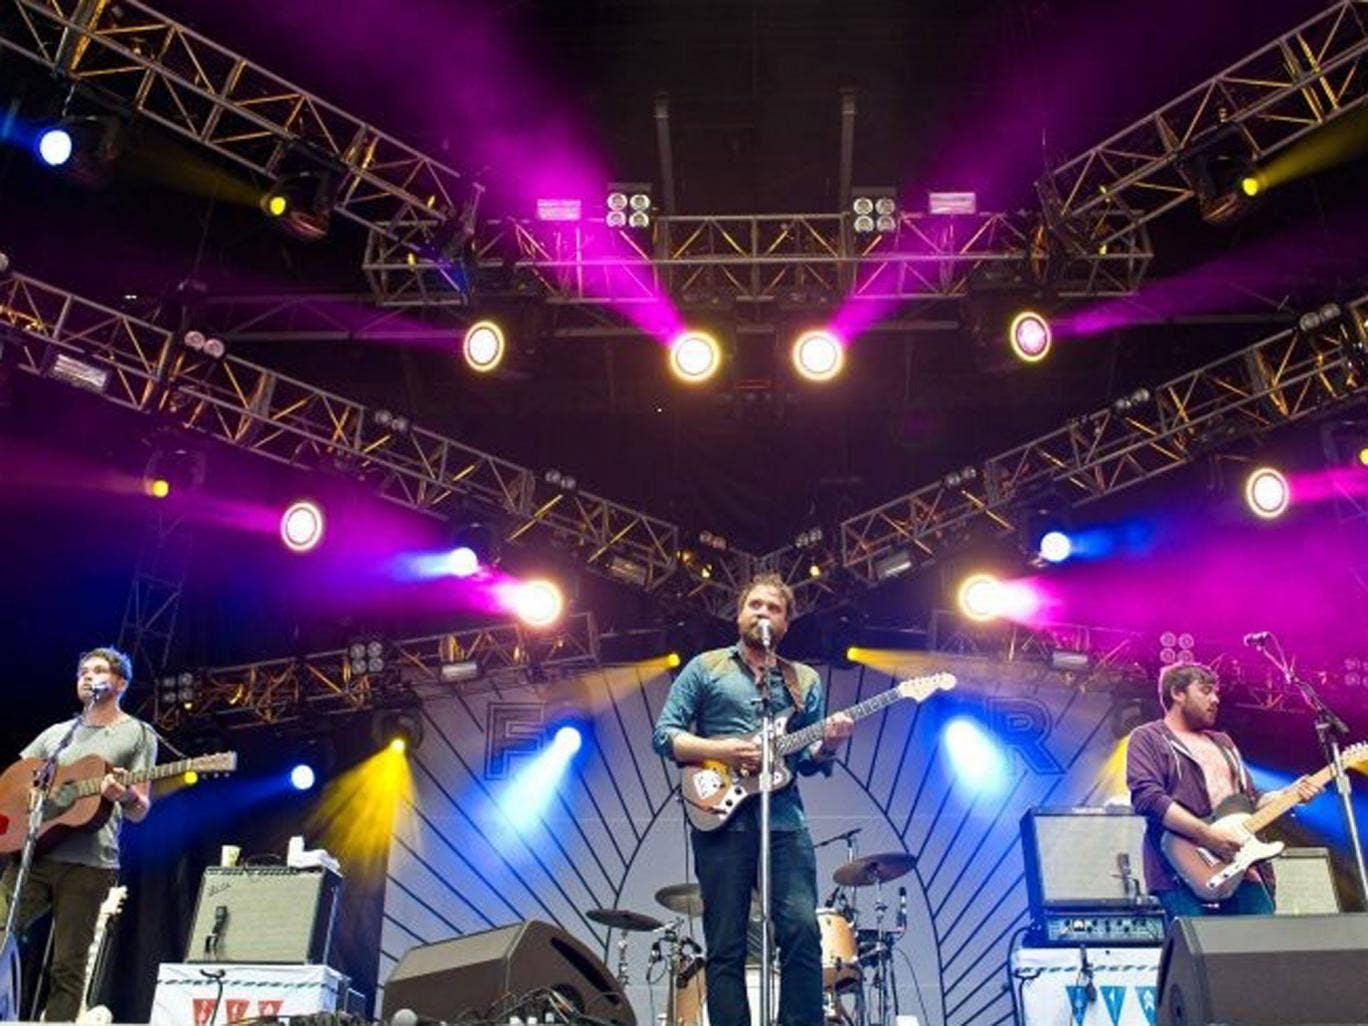 Guitar trio: (from left) Gordon Skene, Scott Hutchison, and Billy Kennedy of Frightened Rabbit on stage this year